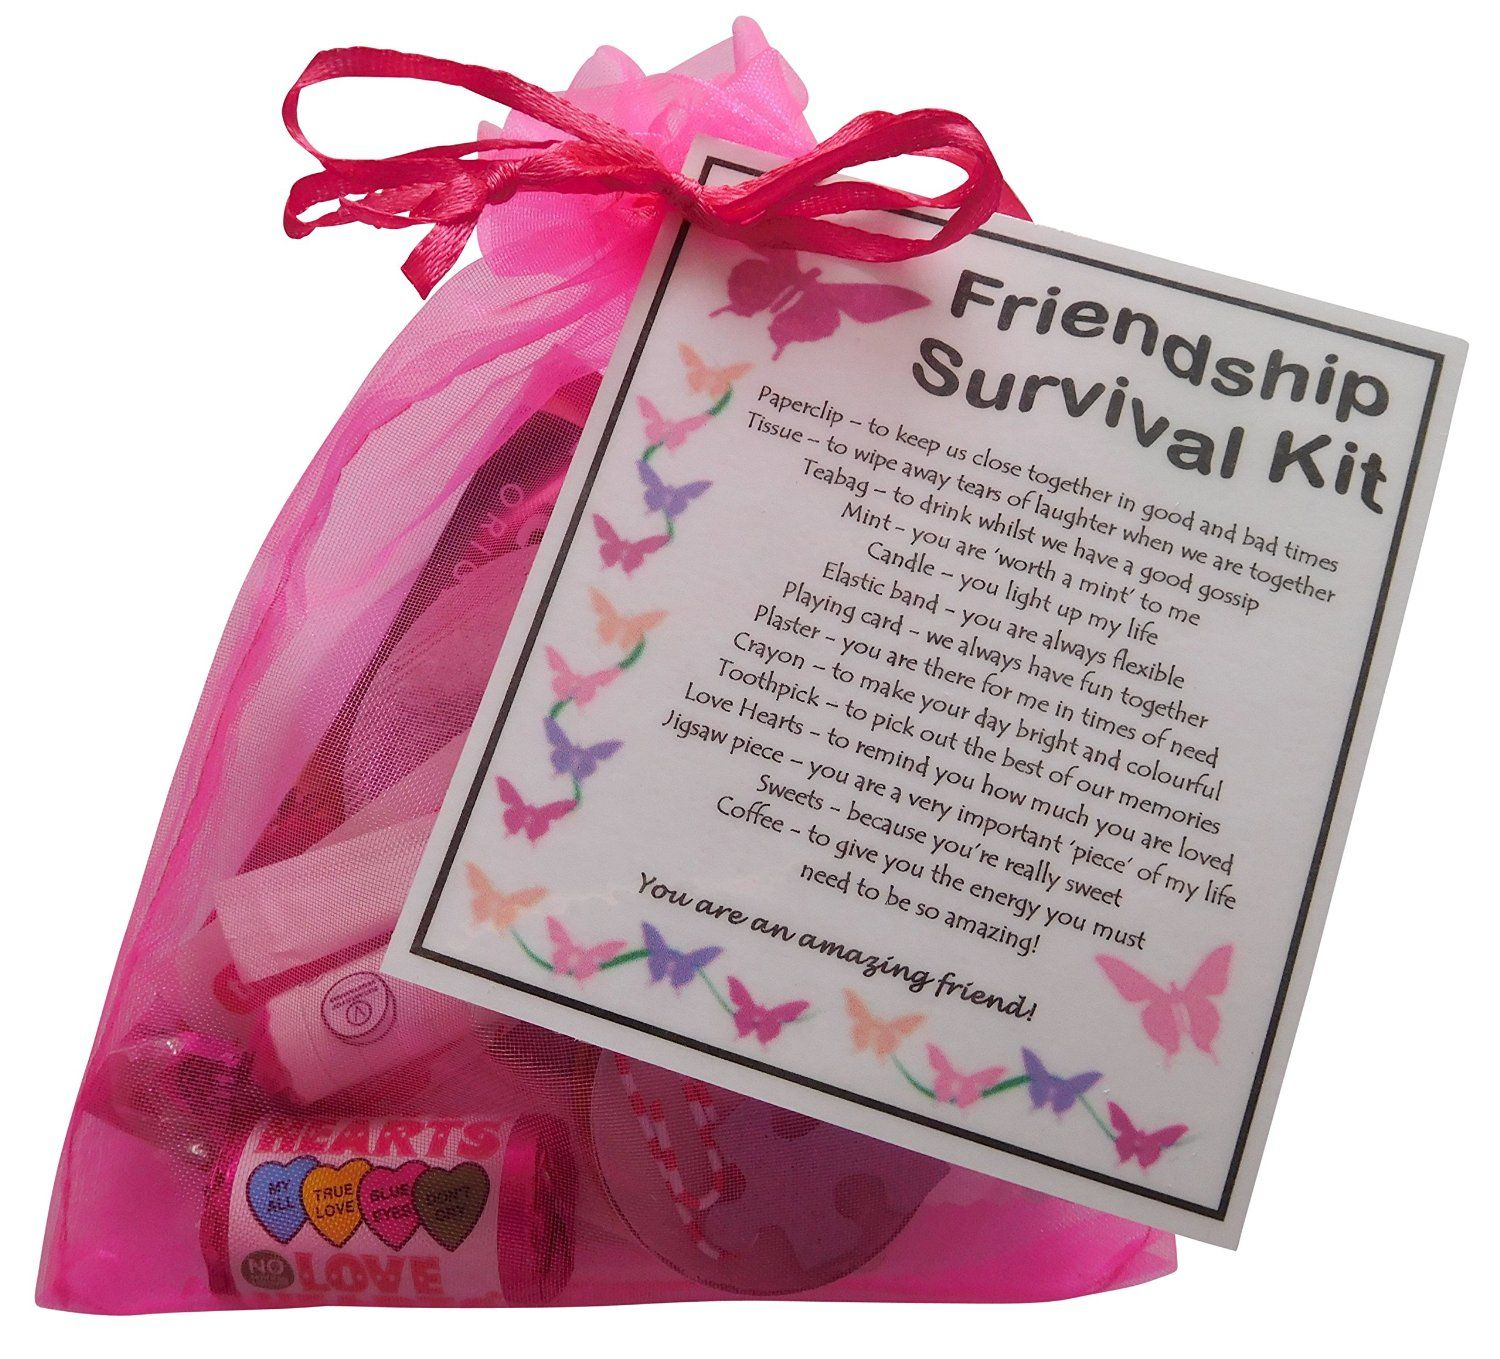 Friendship Survival Kit Gift Great Friend Gift For